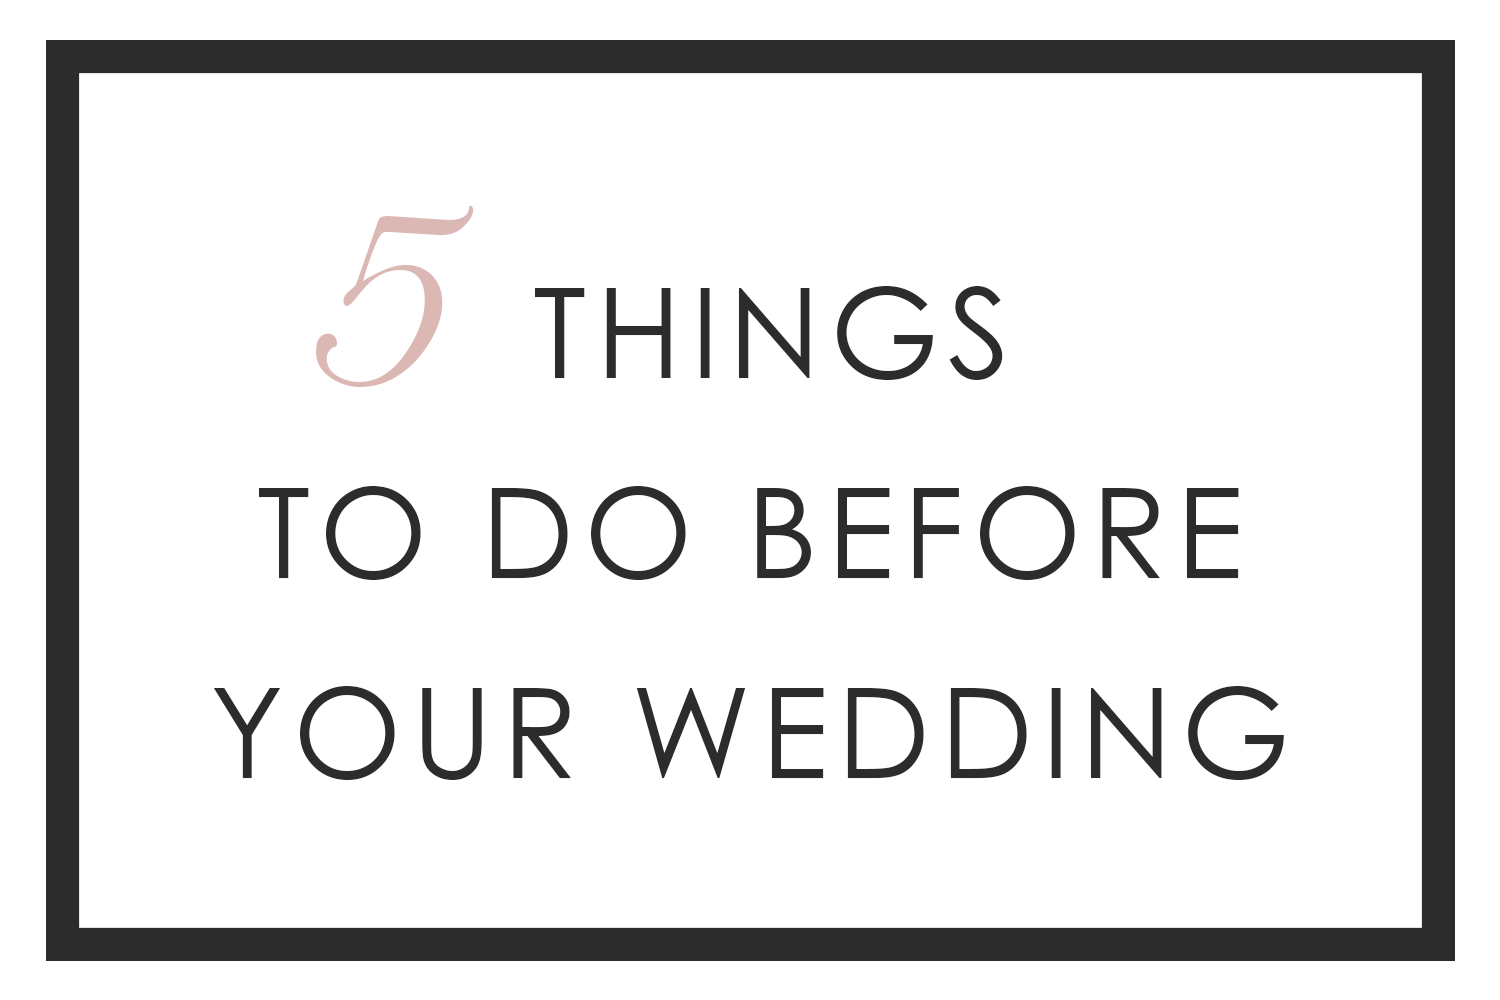 5 Things to Do Before Your Wedding   Wedding Preparation